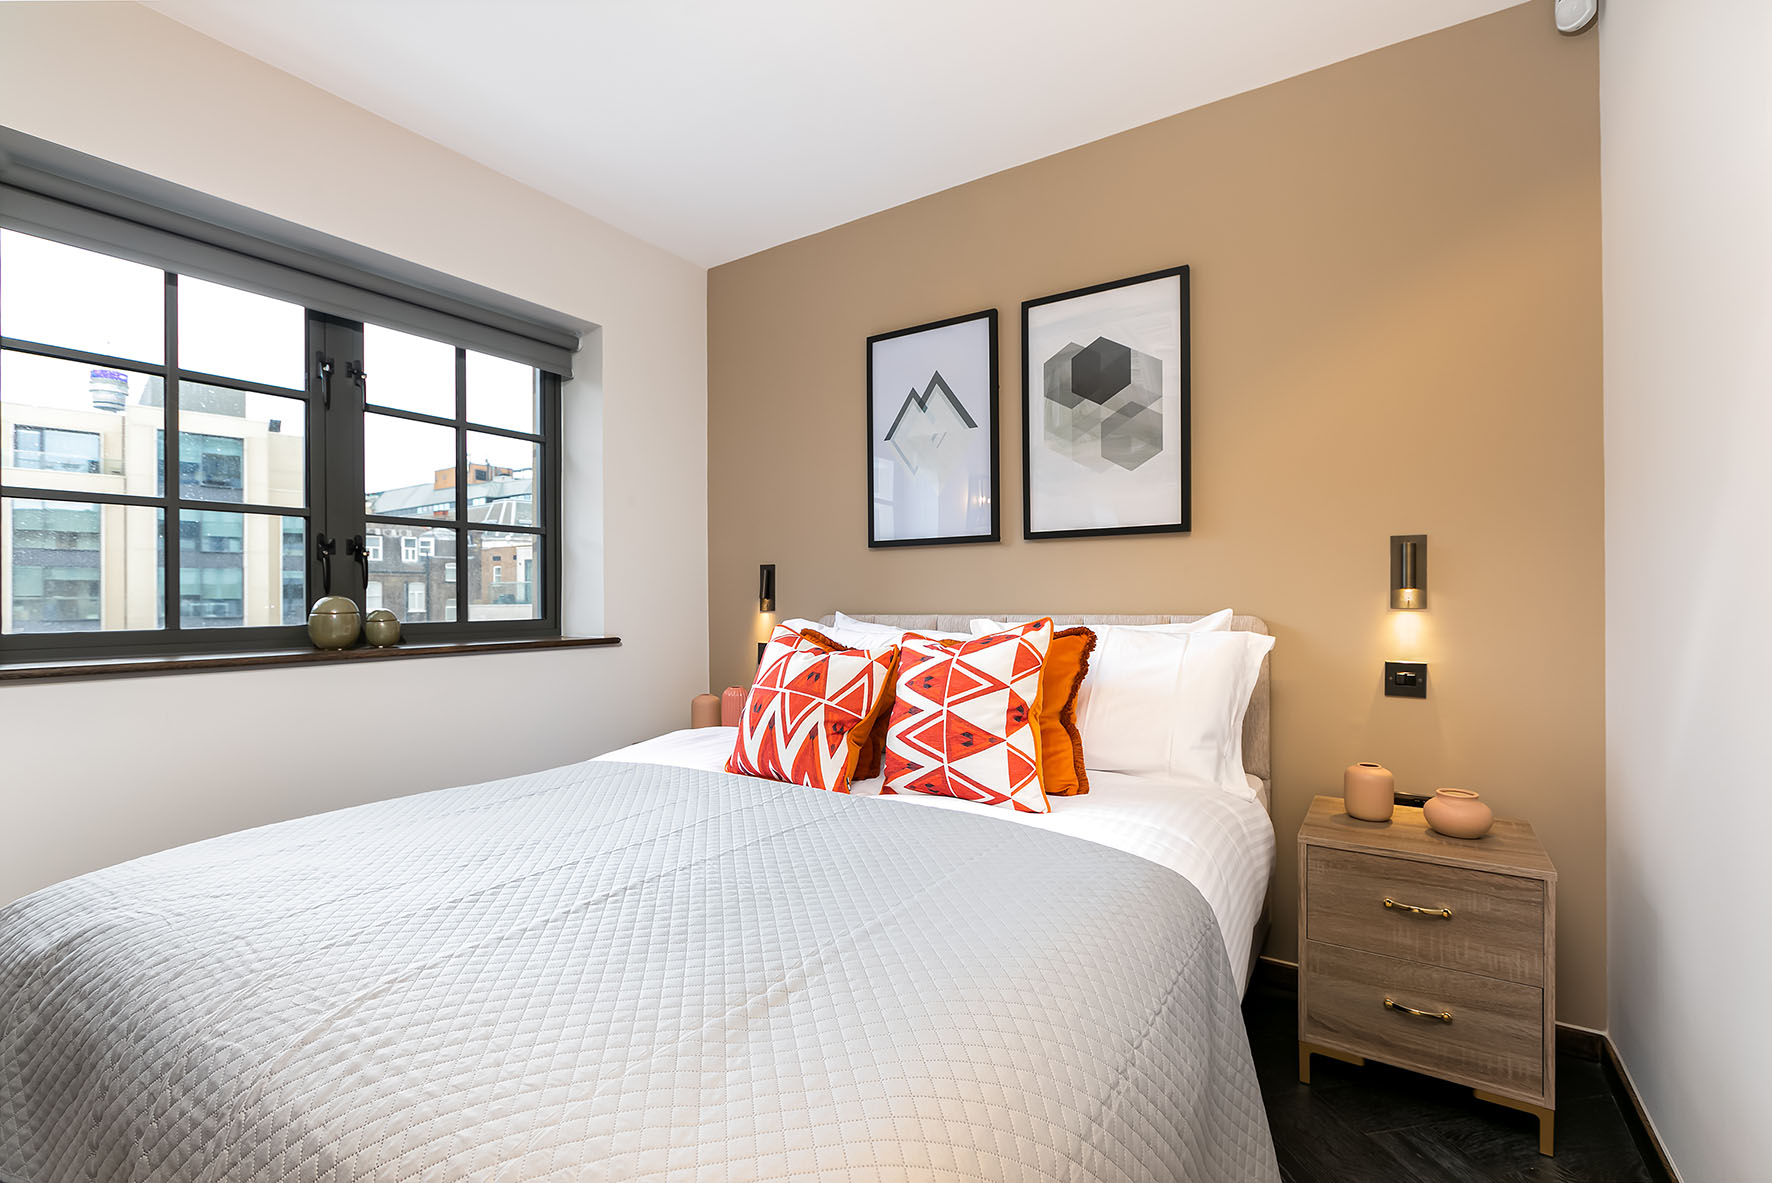 Lovelydays luxury service apartment rental - London - Soho - Noel Street VII - Lovelysuite - 1 bedrooms - 1 bathrooms - Queen bed - 826167cfa46e - Lovelydays